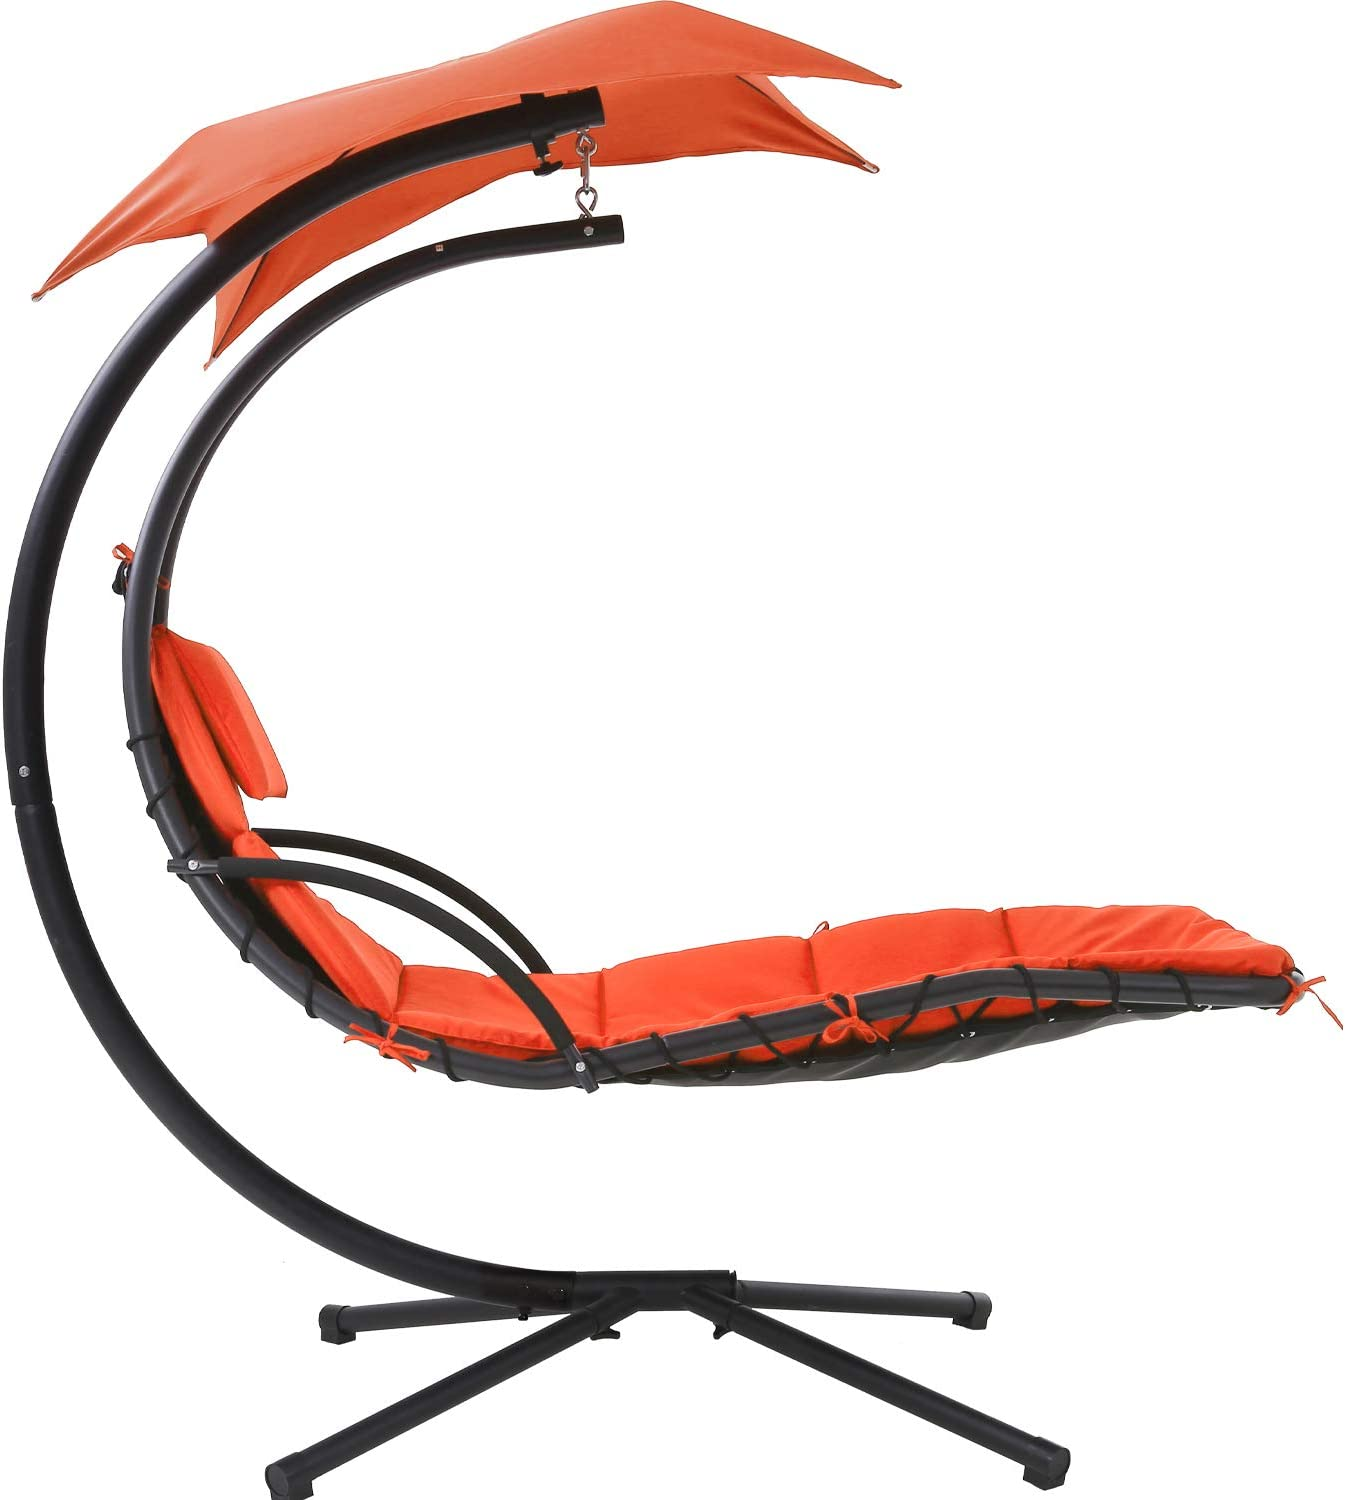 FDW Hanging Chaise Lounger Patio Chair Deck Hammock Yard Chairs Outdoor Furniture Floating Chaise Canopy Swing Arc Stand Air Porch Lounge Chair for Indoor Backyard,Orange Red